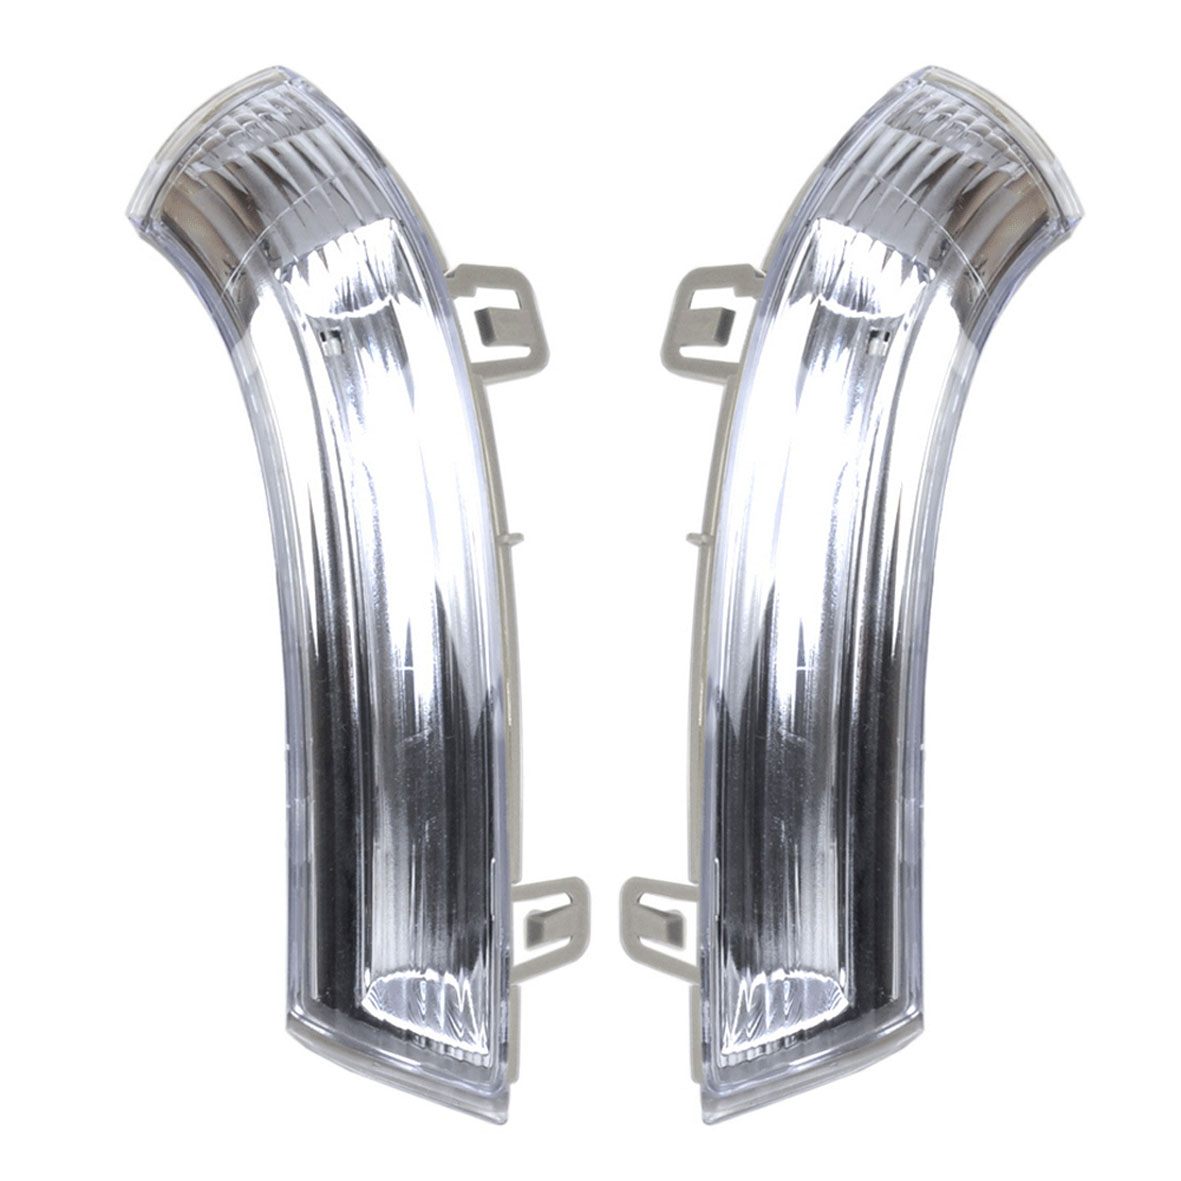 1pcs left /Right Side Dynamic <font><b>LED</b></font> Turn Signal <font><b>Light</b></font> Mirror Indicator For VW <font><b>Golf</b></font> <font><b>5</b></font> Jetta MK5 Passat B6 image